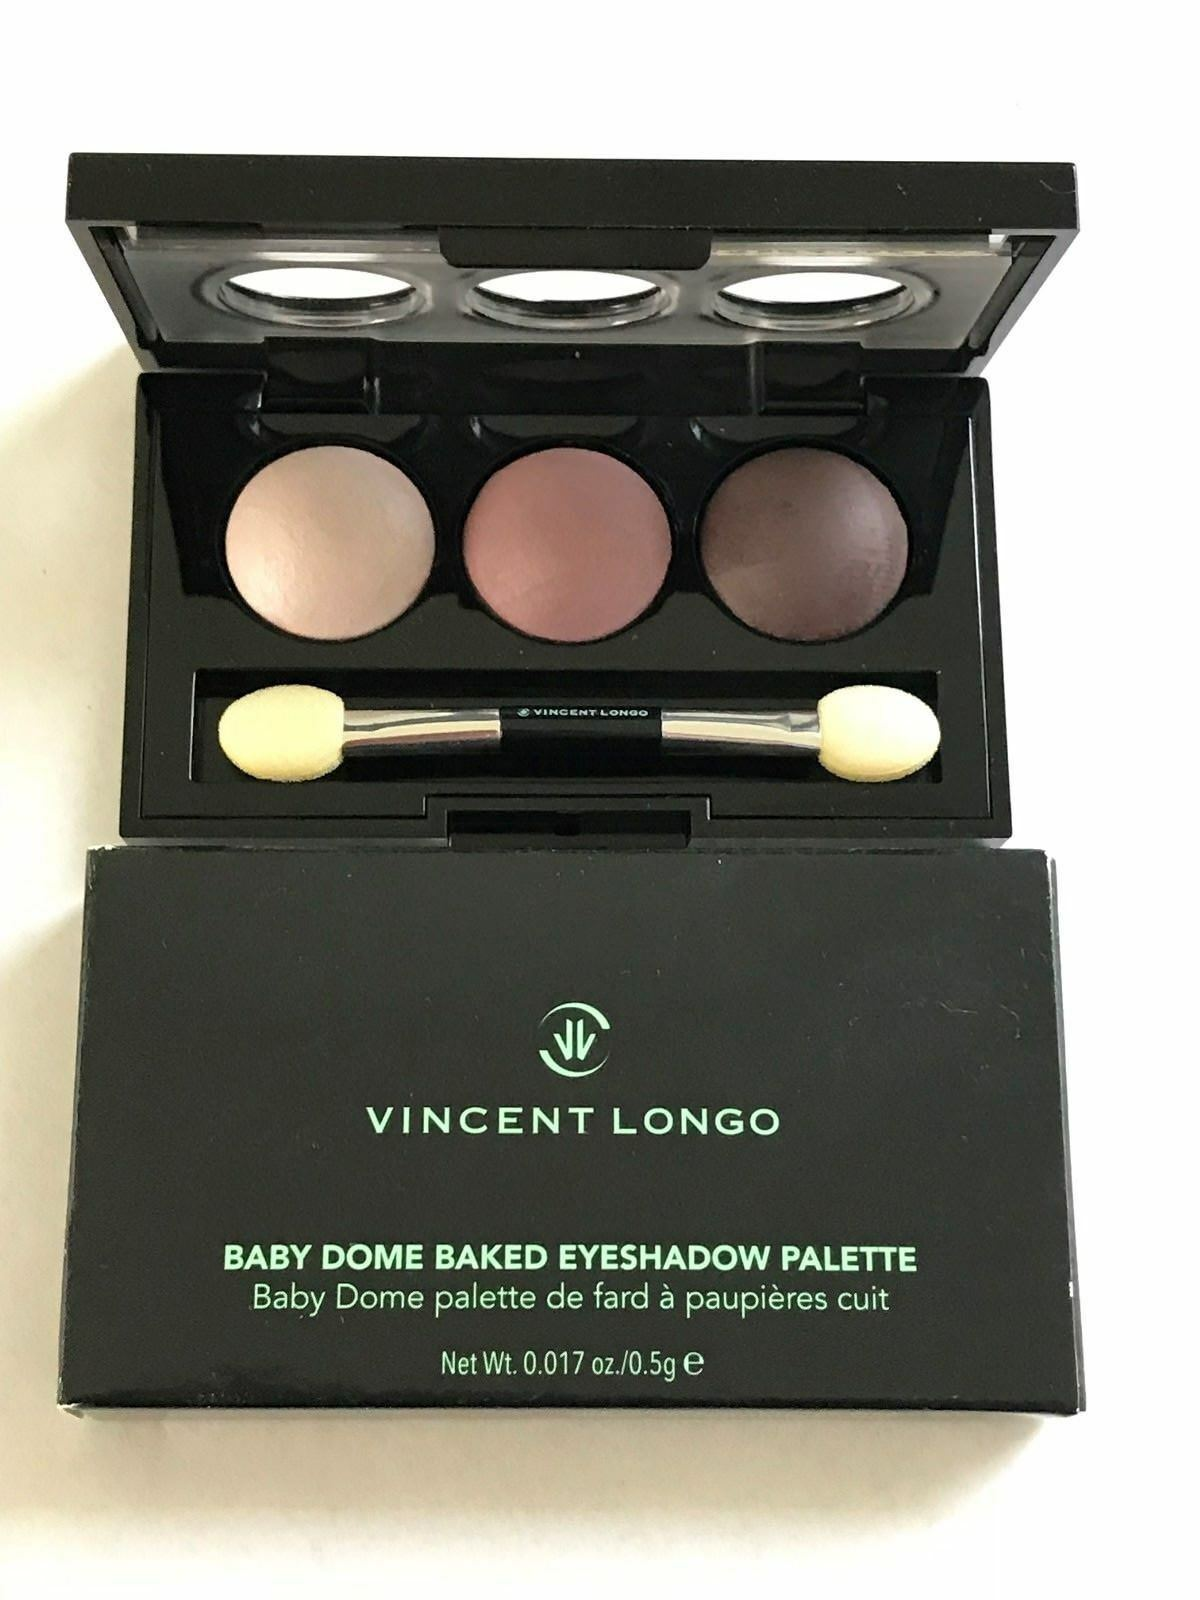 Vincent Longo Baby Dome Baked Eyeshadow Palette Trio Peralisa - $6.00